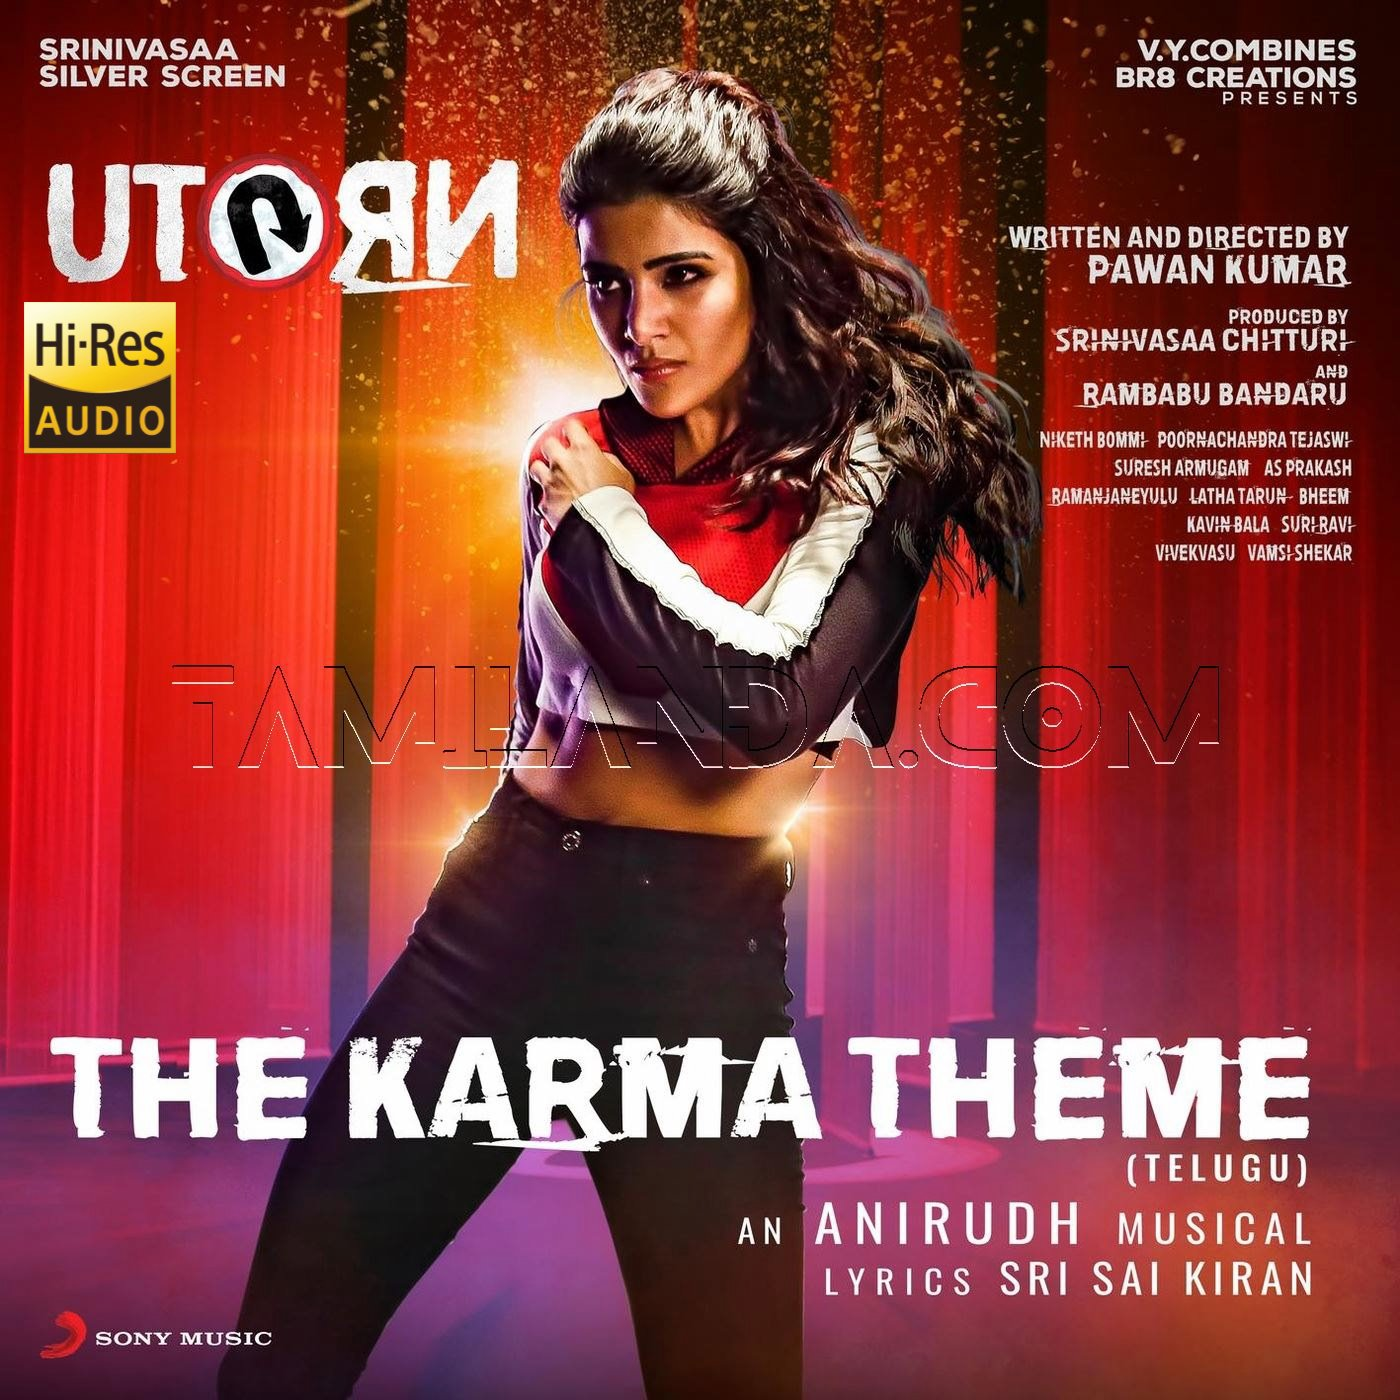 The Karma Theme (Telugu (From U Turn)) – Single  24 BIT 96 KHZ FLAC Song